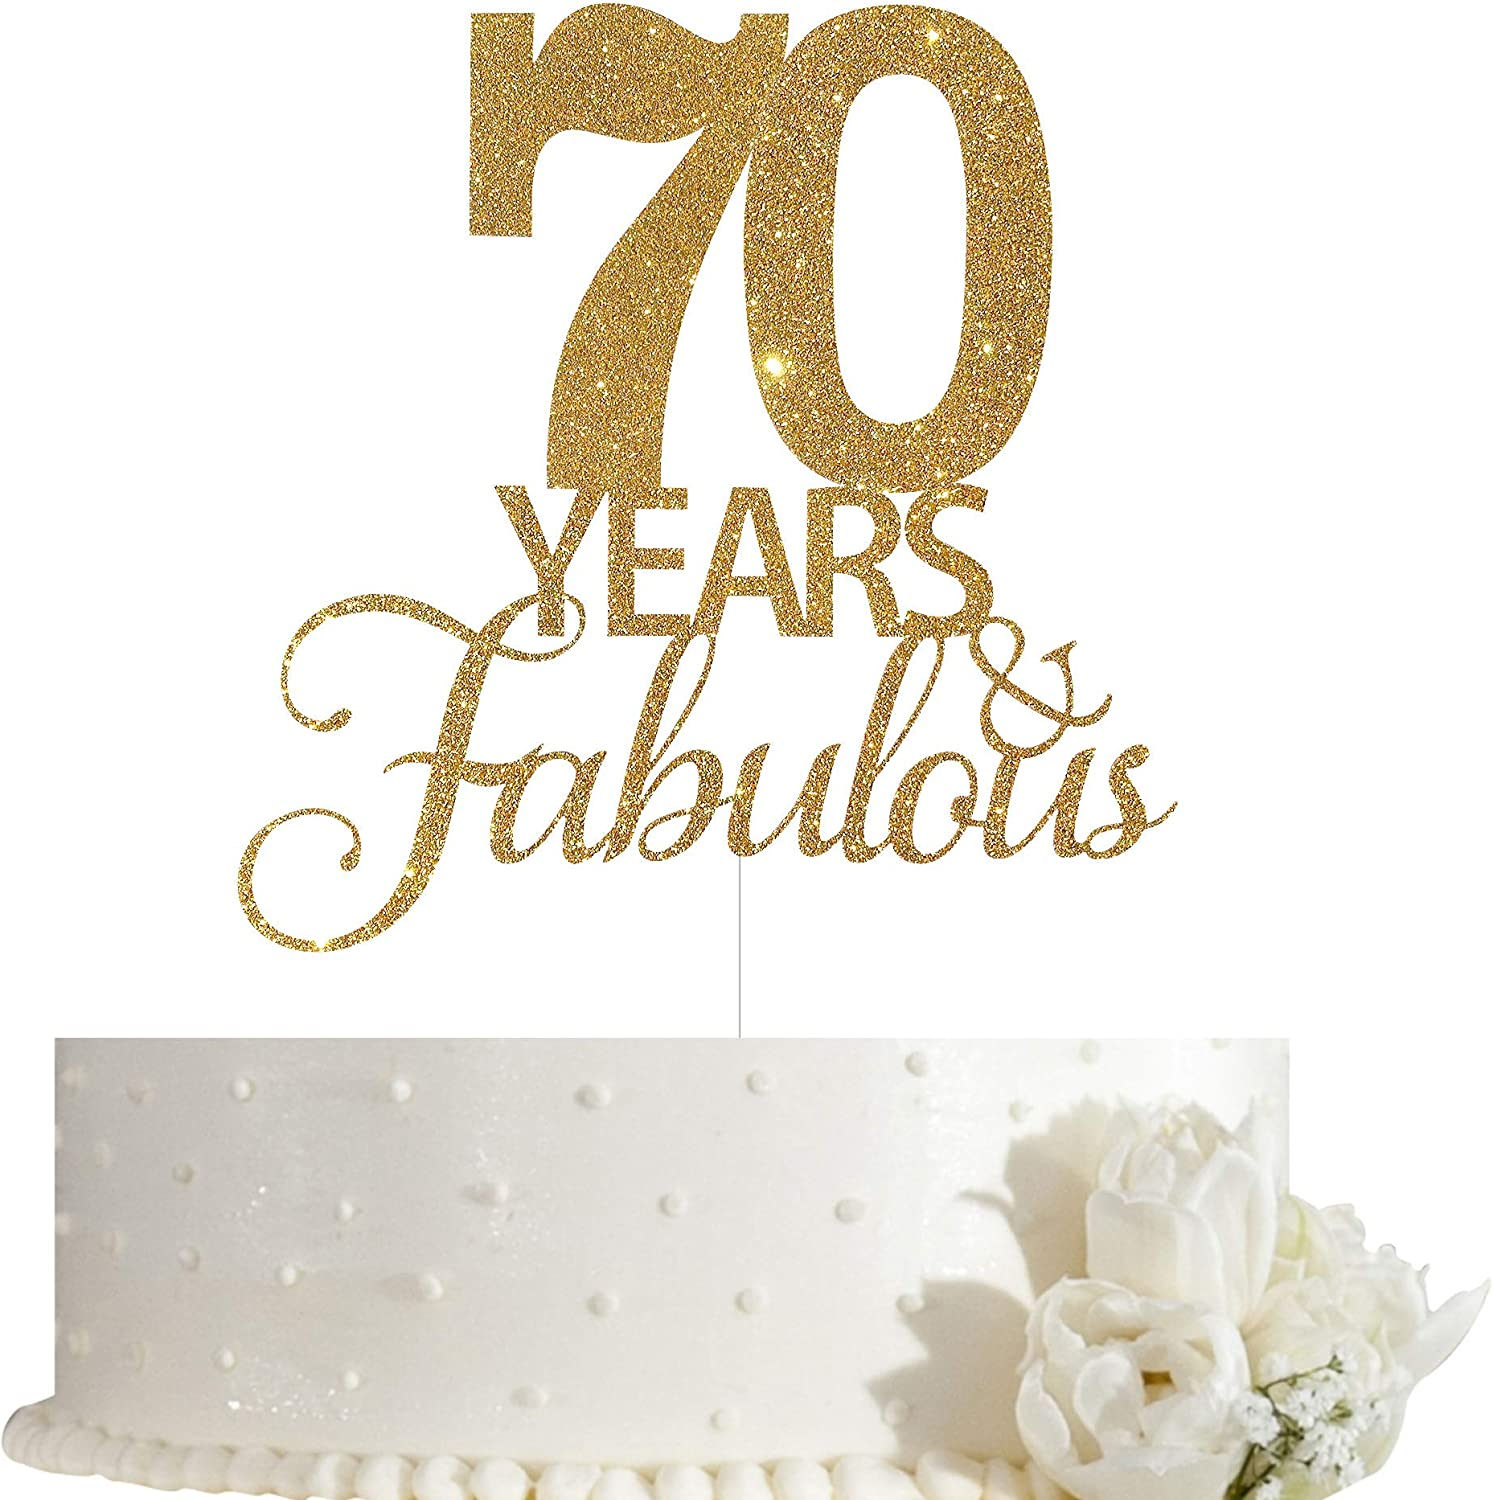 Stupendous Amazon Com 70 Years Fabulous Cake Topper 70Th Birthday Cake Funny Birthday Cards Online Aboleapandamsfinfo